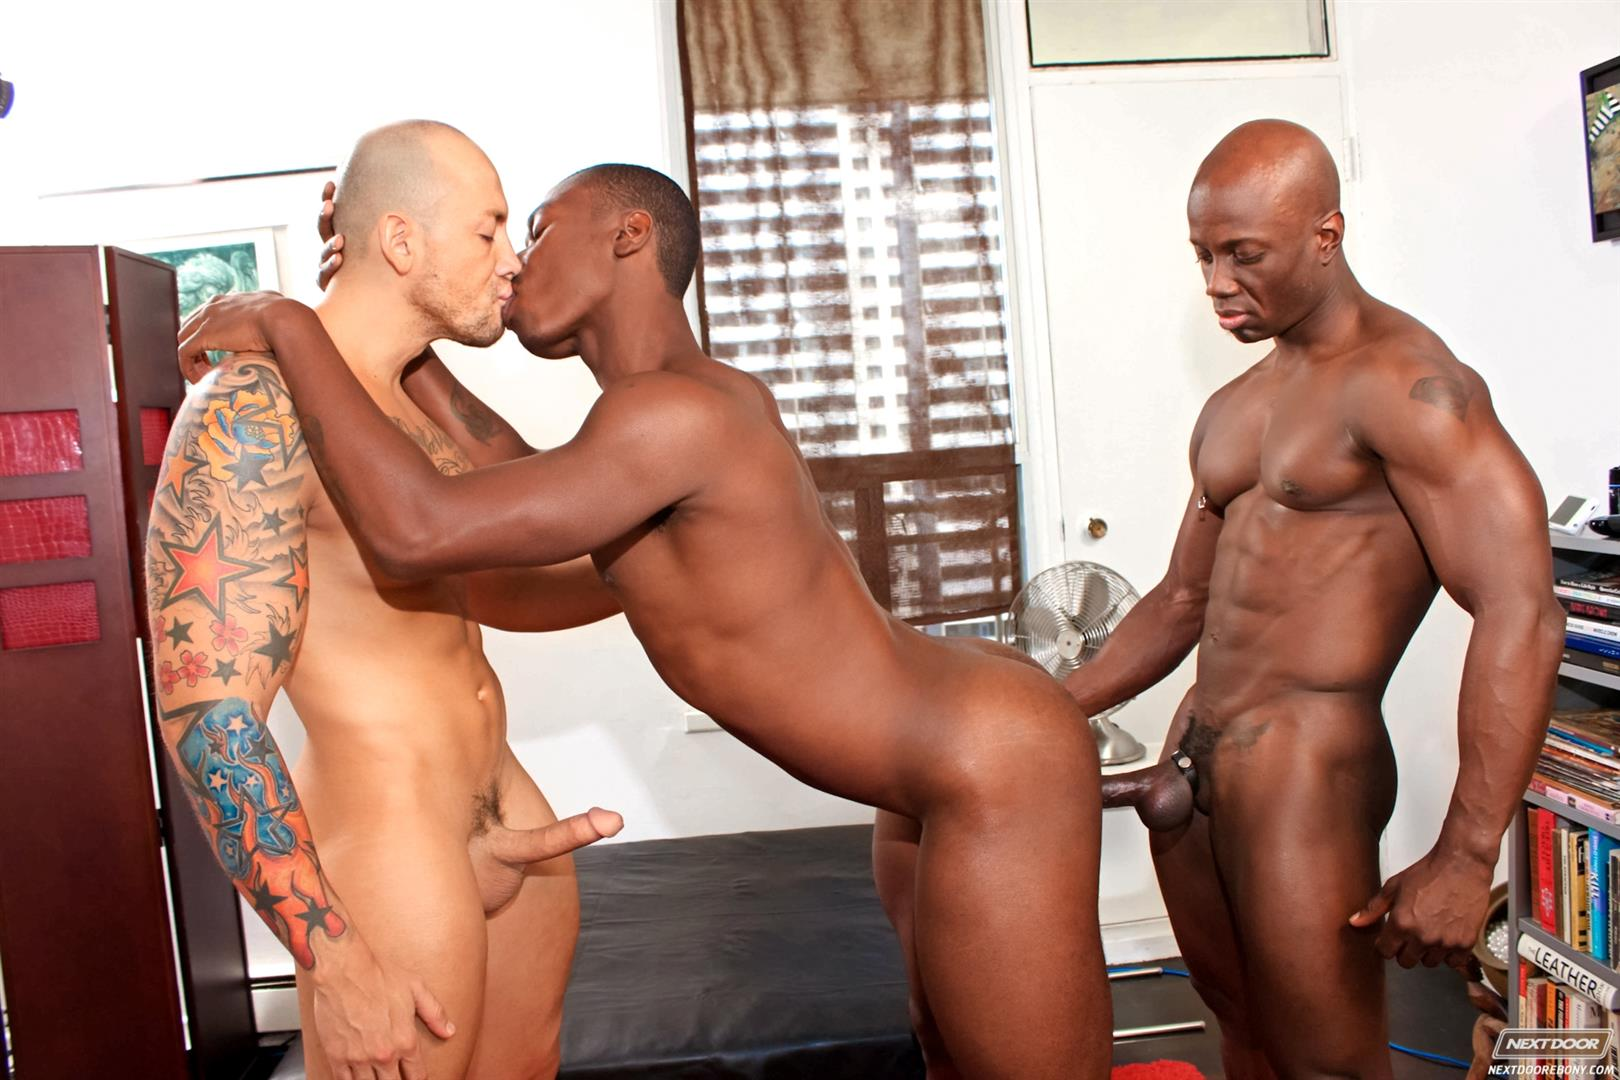 free gay black porn tube Watch top rated GAY INTERRACIAL porn tube movies for FREE!